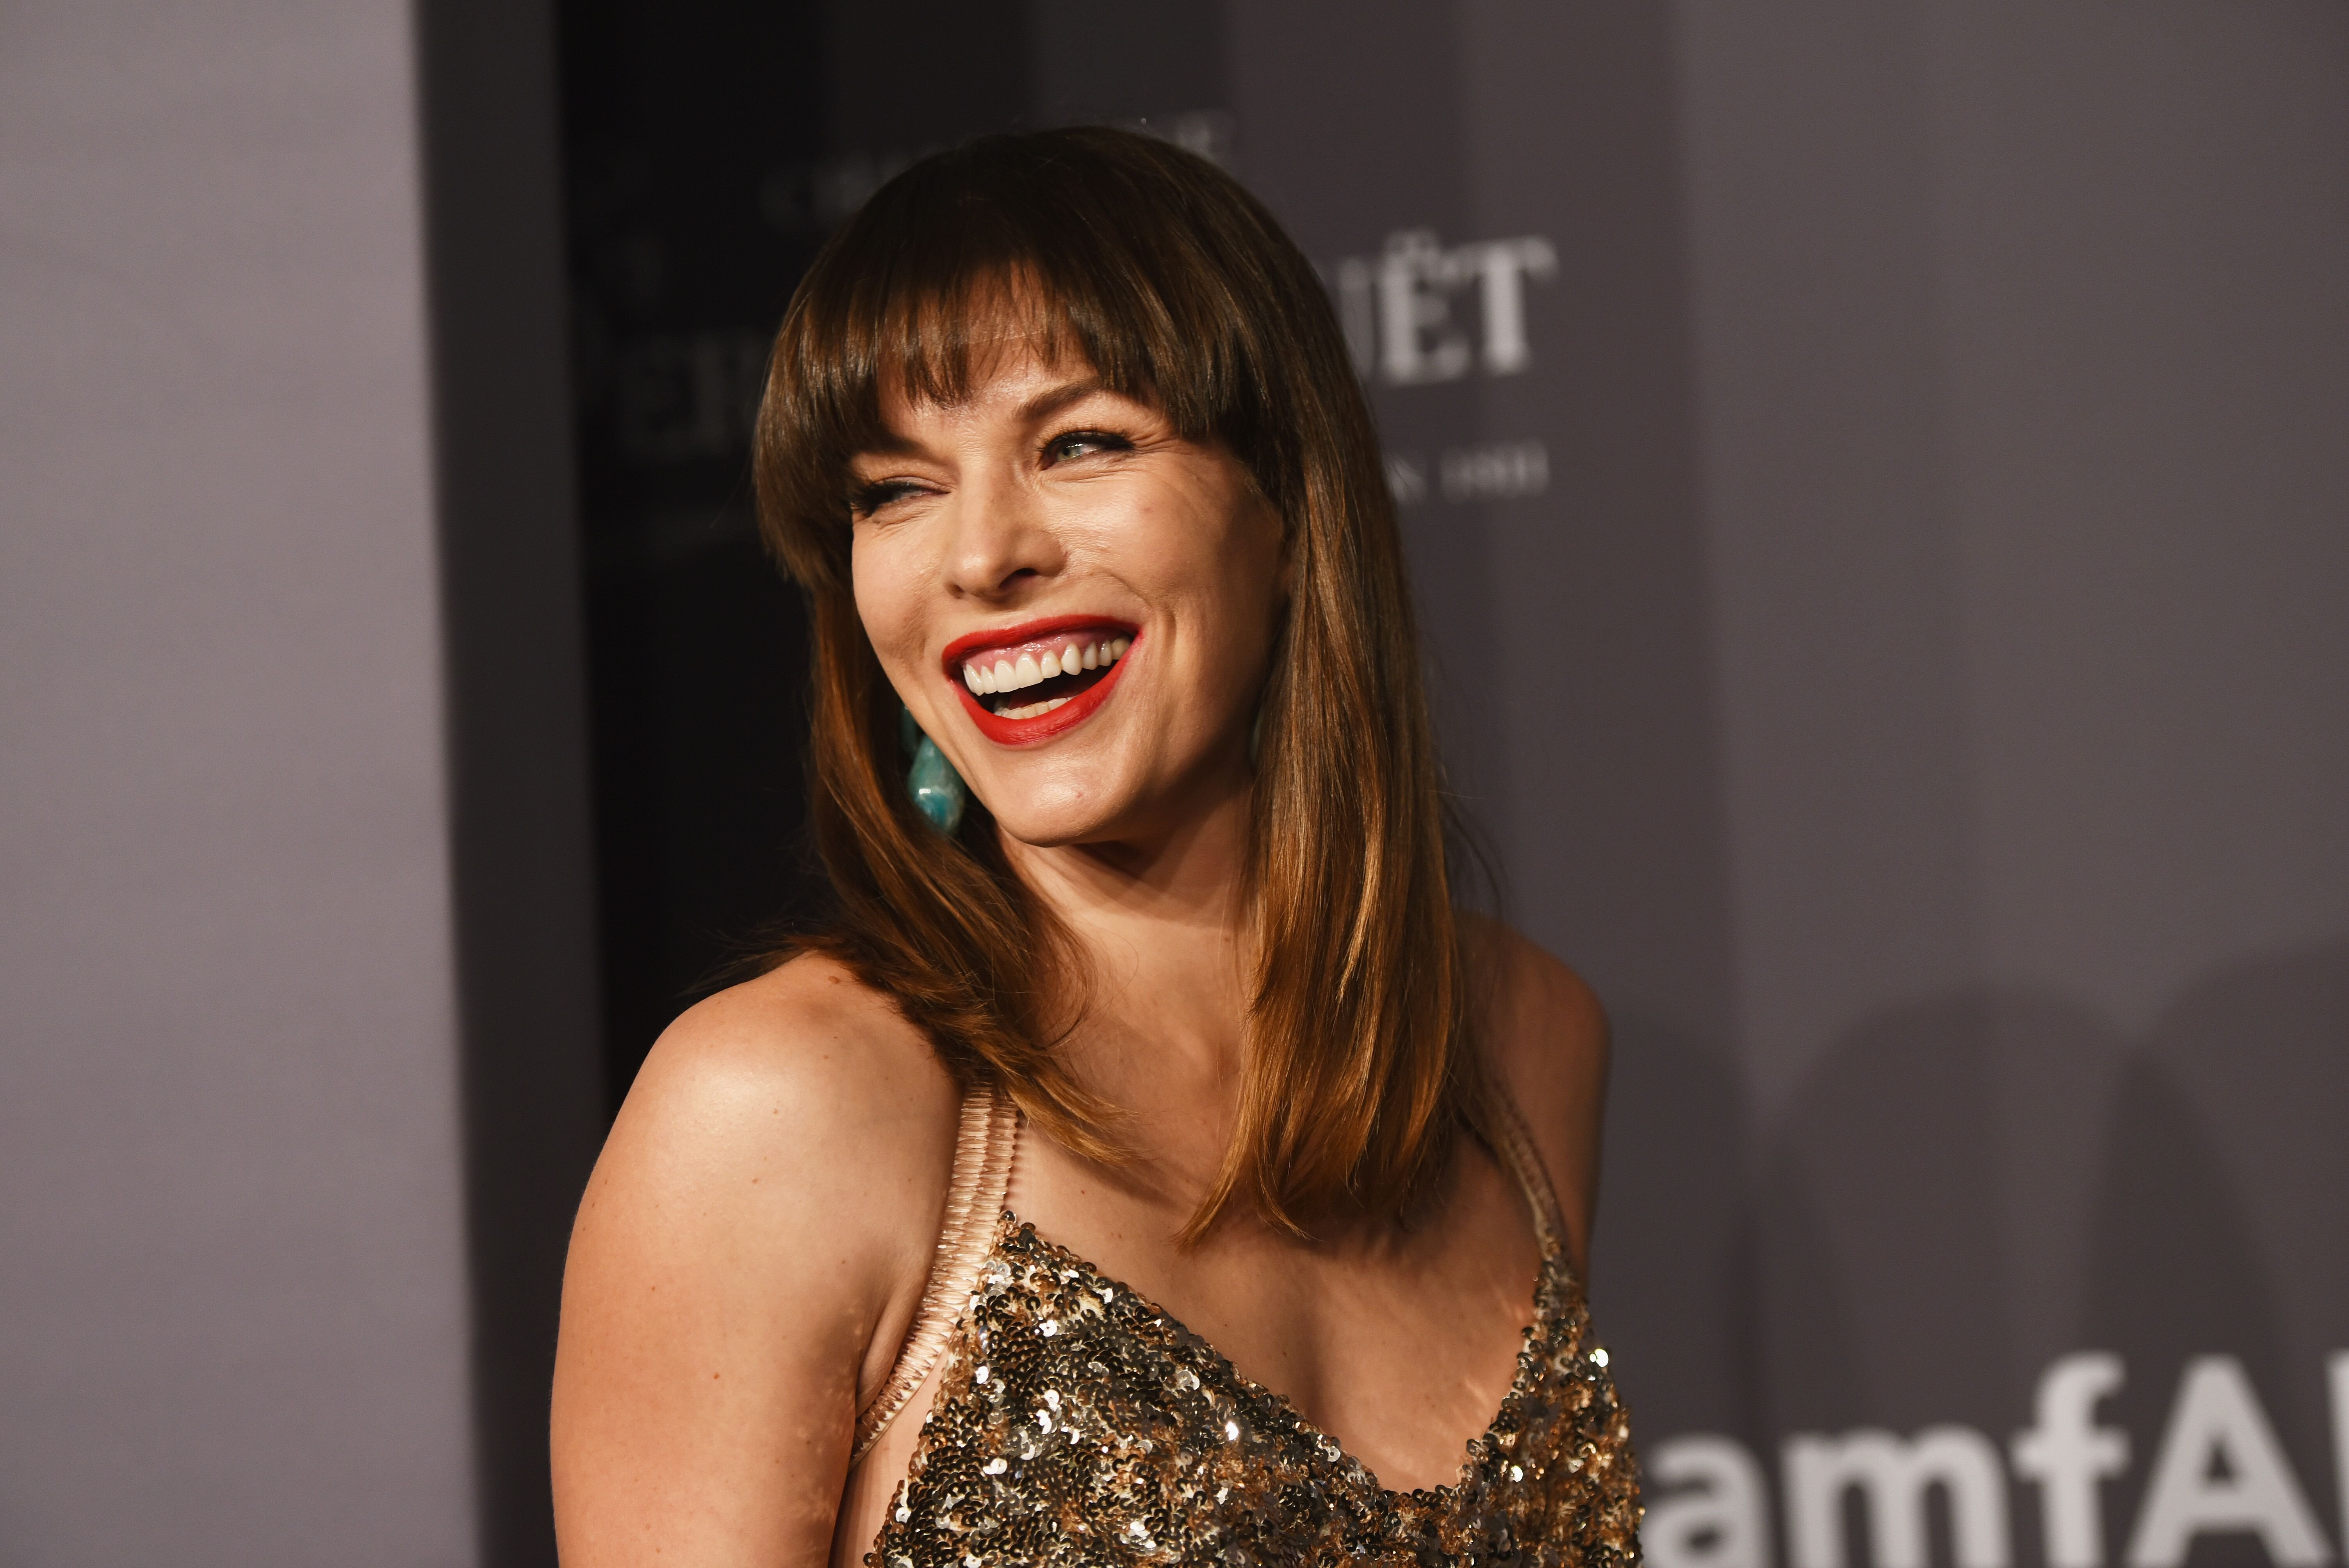 Milla Jovovich attends the amfAR New York Gala 2019 at Cipriani Wall Street in New York City | Photo: Getty Images